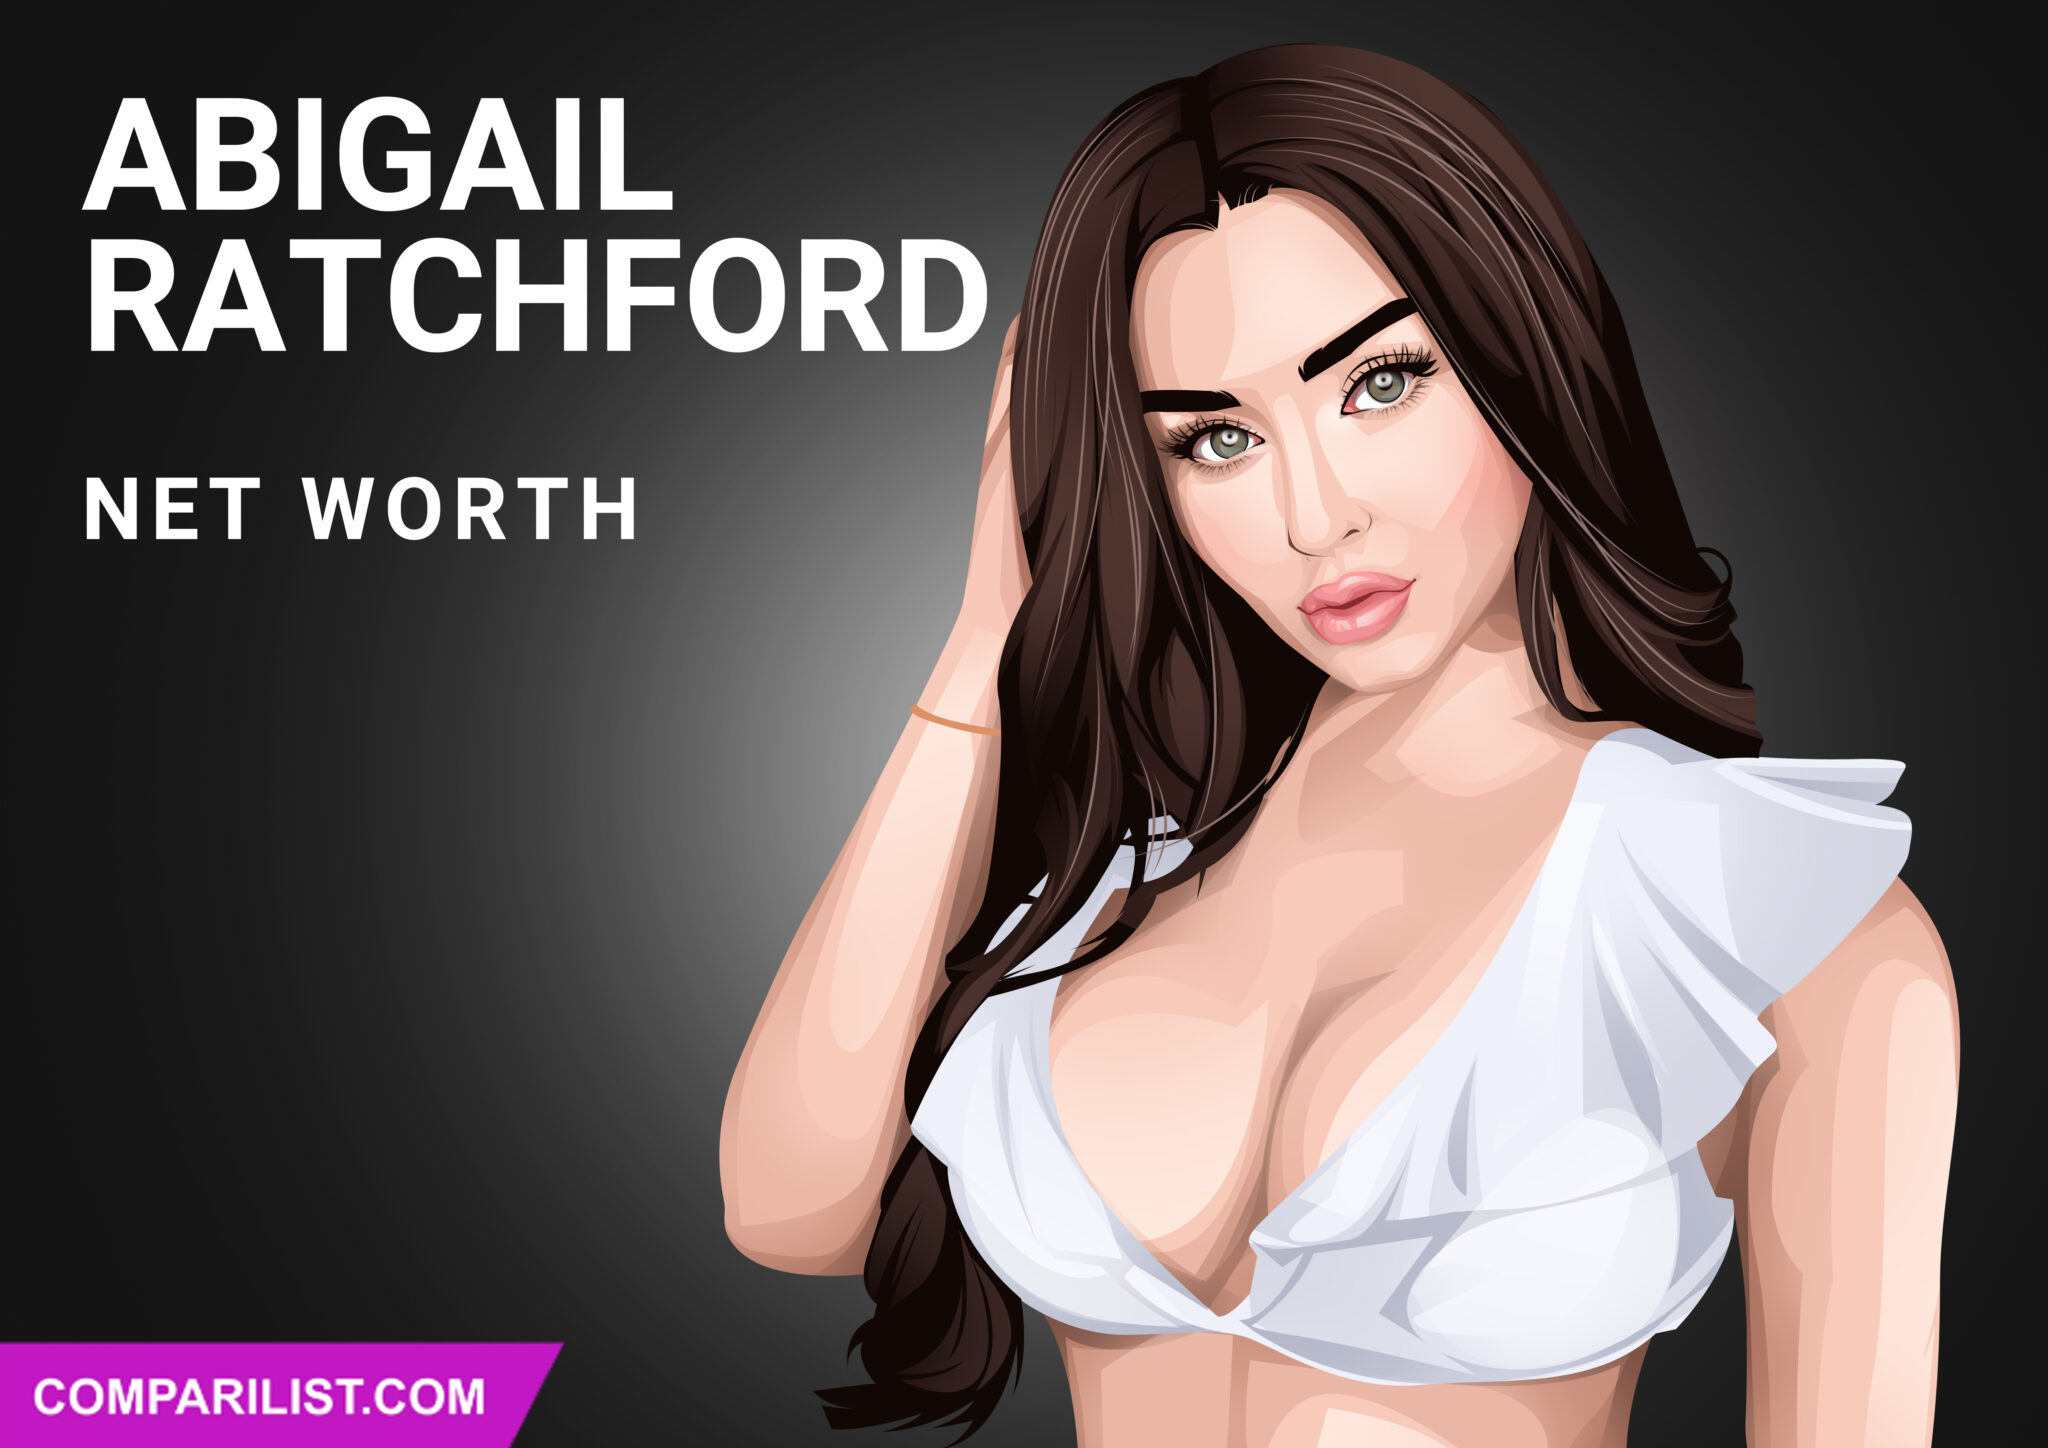 Abigail Ratchford Net Worth 2020 Sources Of Income Salary And More